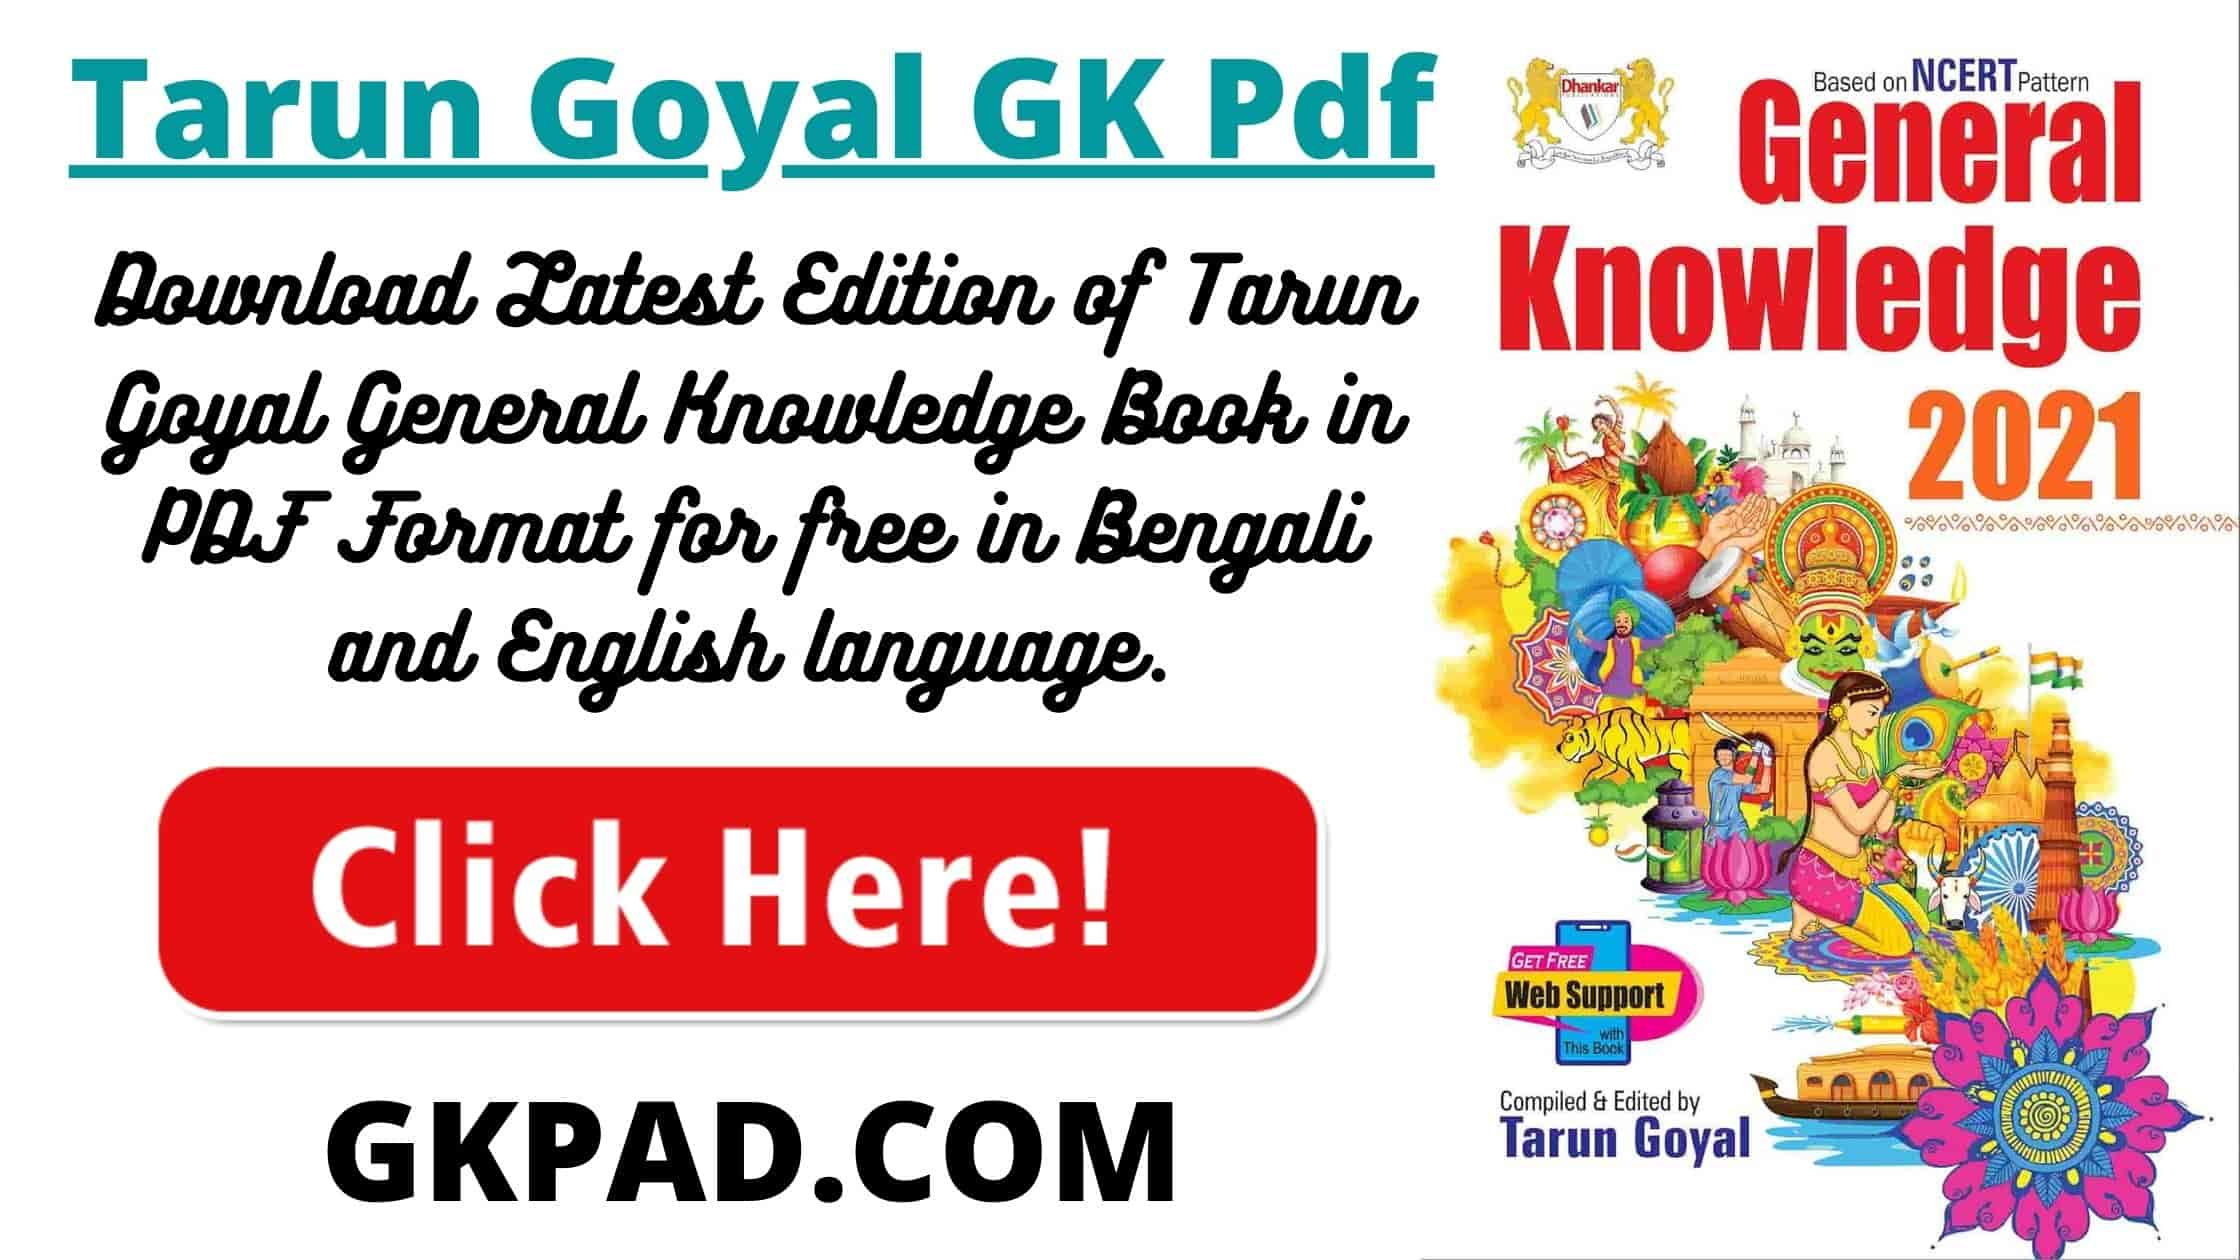 TARUN GOYAL GK 2021 PDF DOWNLOAD